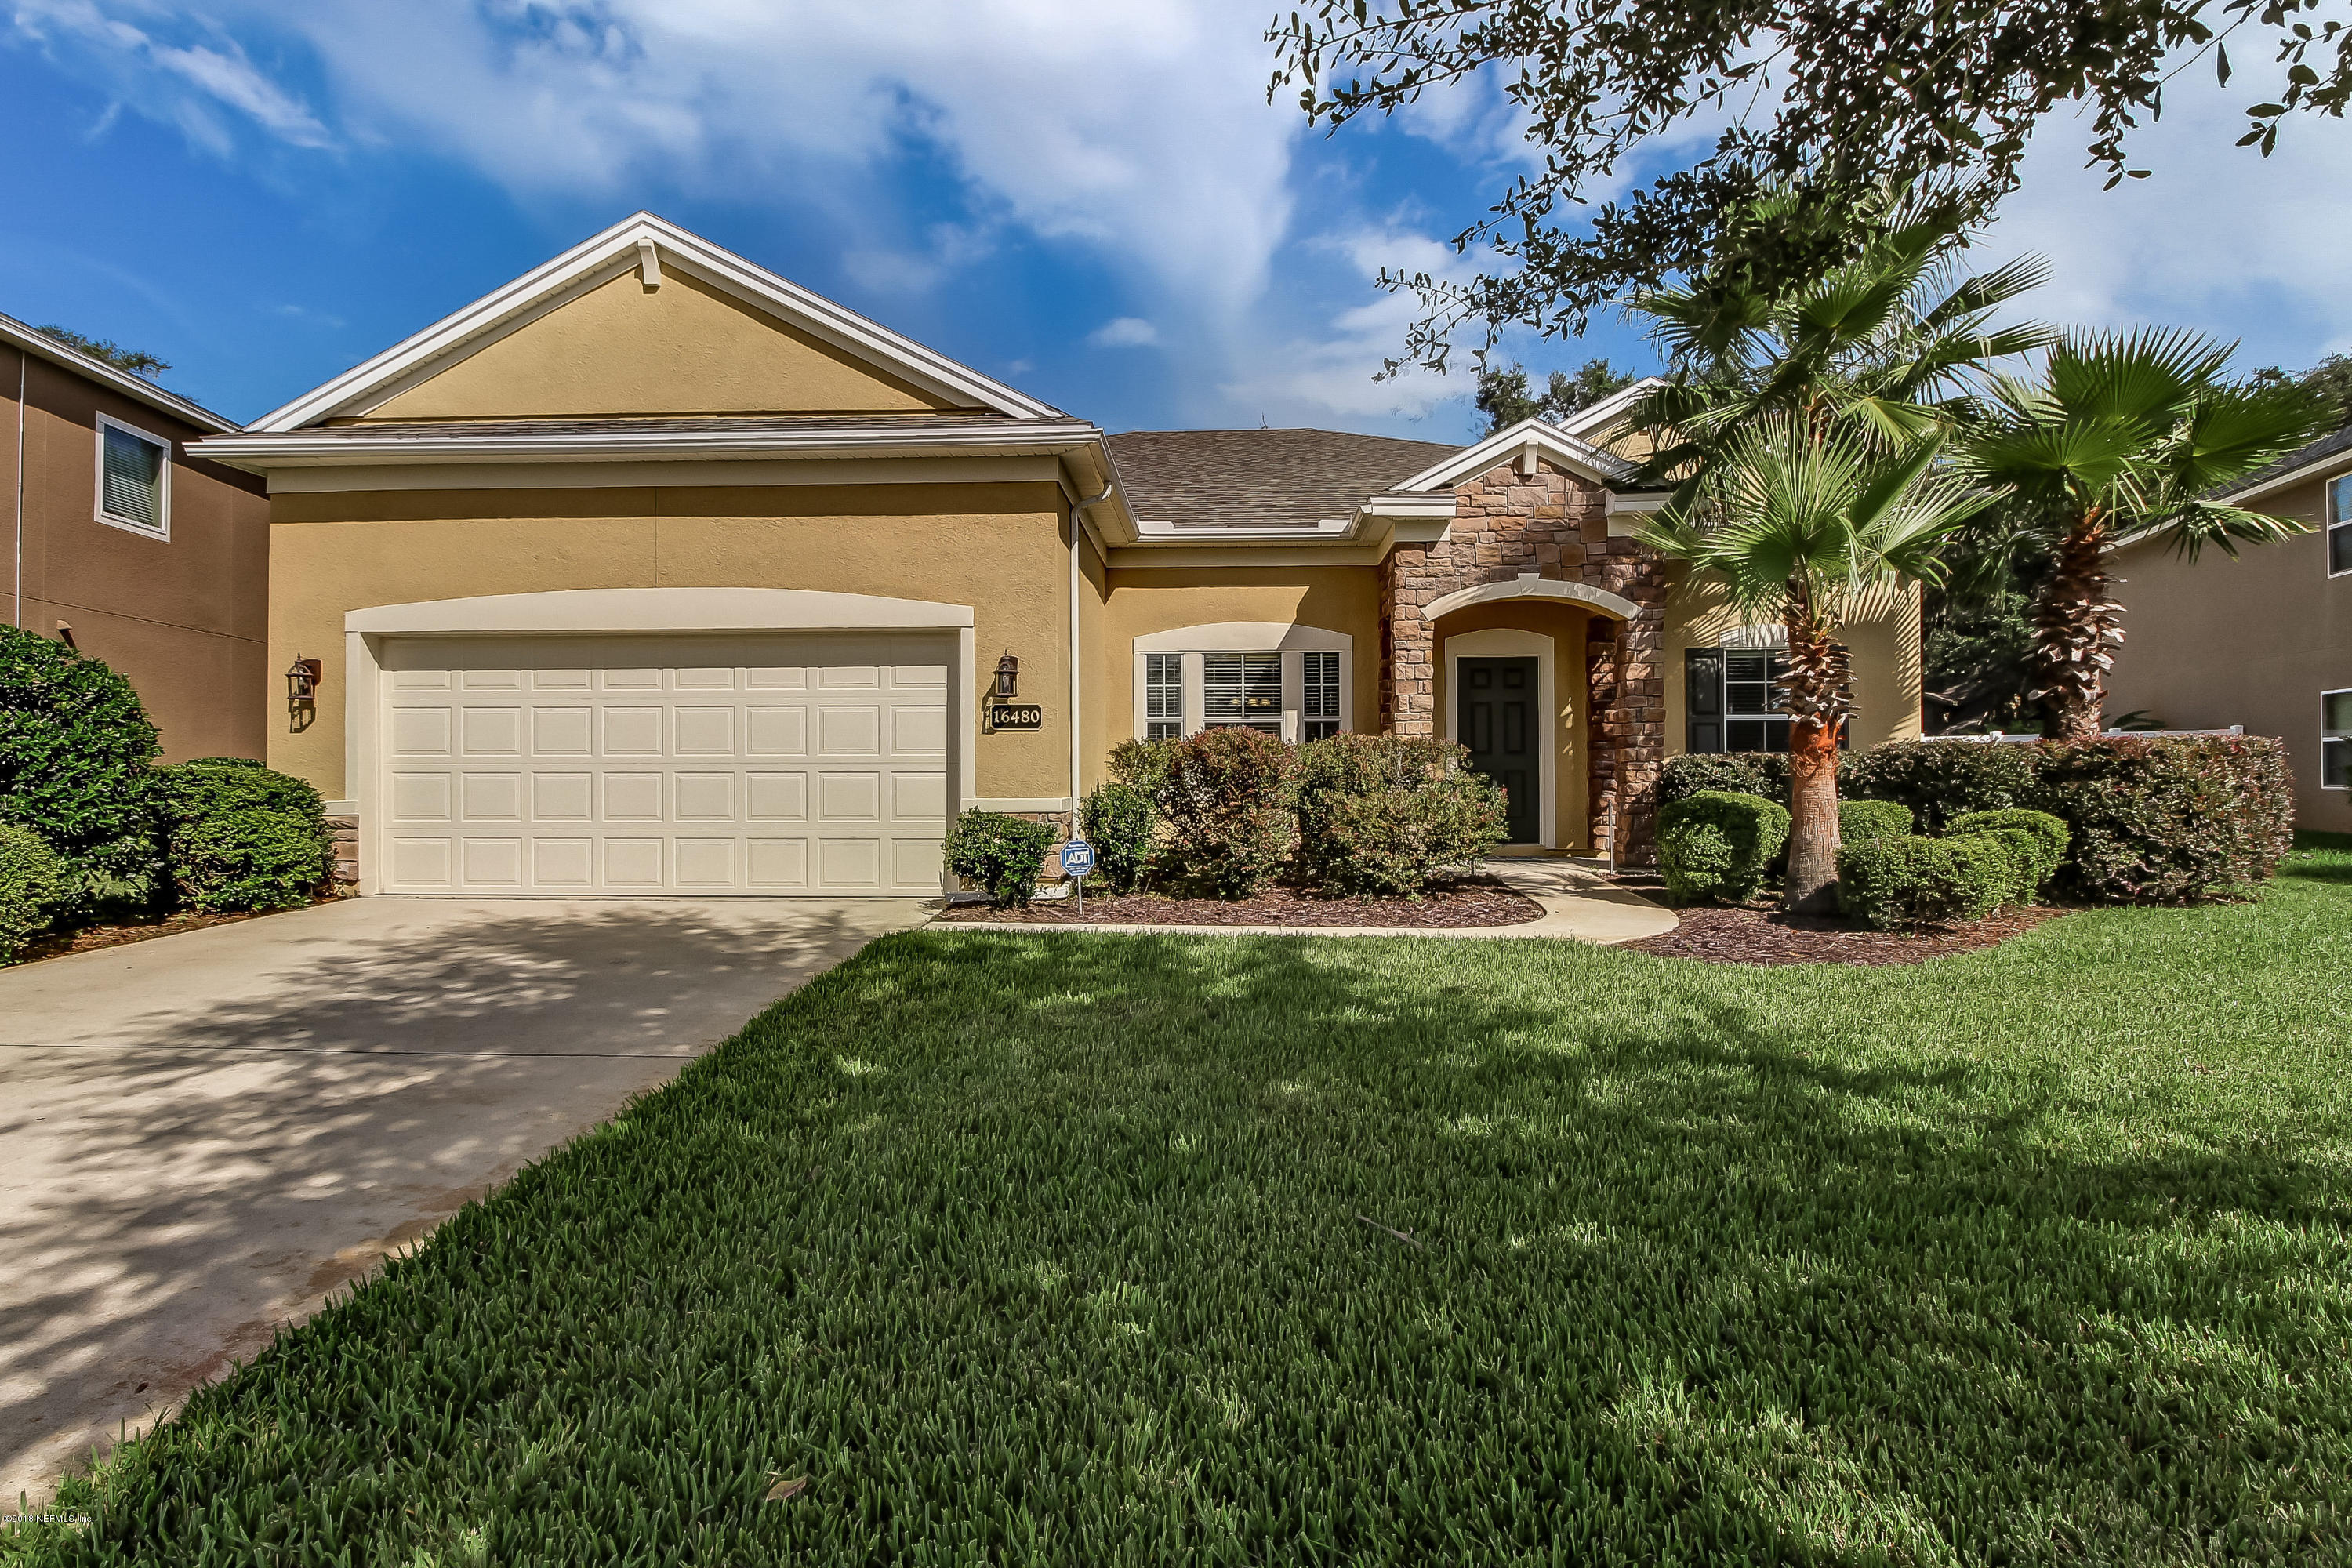 16480 TISONS BLUFF, JACKSONVILLE, FLORIDA 32218, 4 Bedrooms Bedrooms, ,3 BathroomsBathrooms,Residential - single family,For sale,TISONS BLUFF,956481